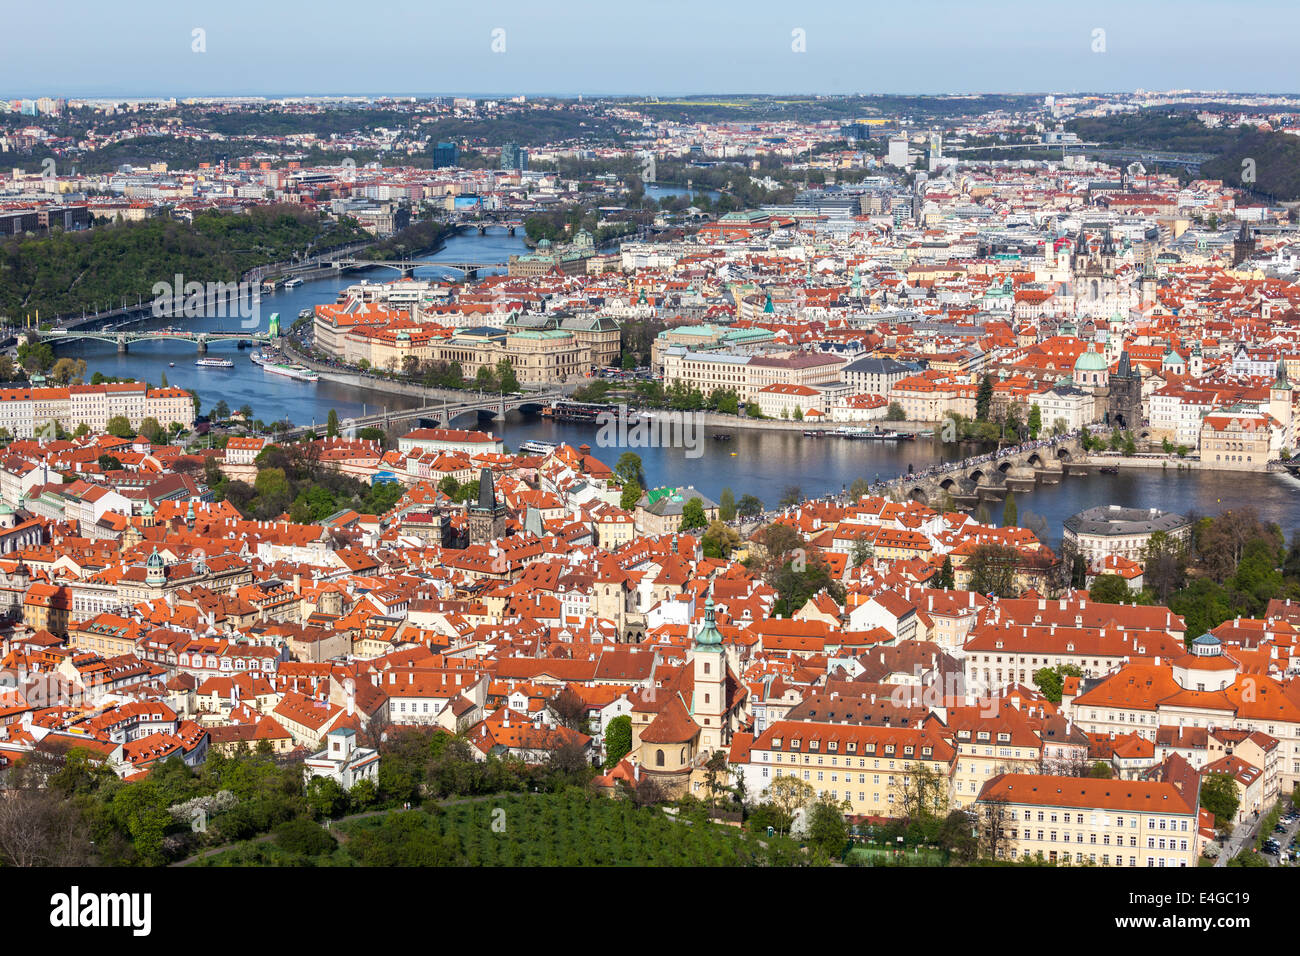 Aerial view of Charles Bridge over Vltava river and Old city from Petrin hill Observation Tower. Prague, Czech Republic - Stock Image